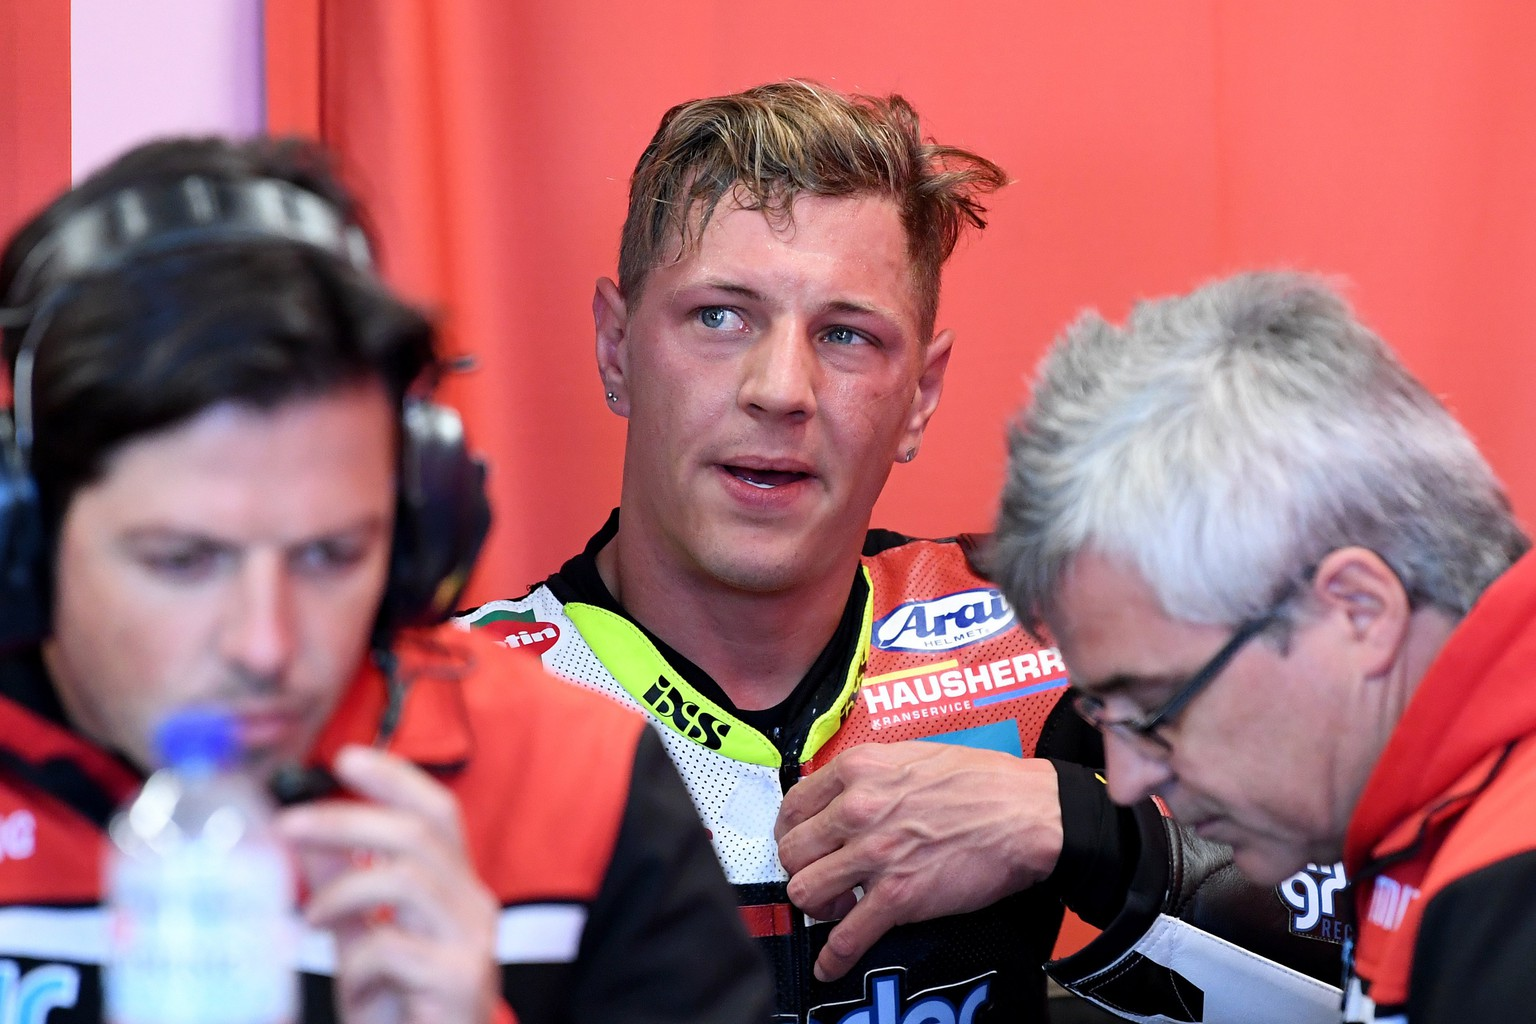 epa06277530 Swiss Moto2 rider Dominique Aegerter (C) of the Kiefer Racing team speaks with team officials during free practice of the Australian MotoGP Grand Prix 2017 on Phillip Island, Victoria, Australia, 20 October 2017. The Australian motorcycling Grand Prix takes place on 22 October 2017.  EPA/JOE CASTRO AUSTRALIA AND NEW ZEALAND OUT  EDITORIAL USE ONLY